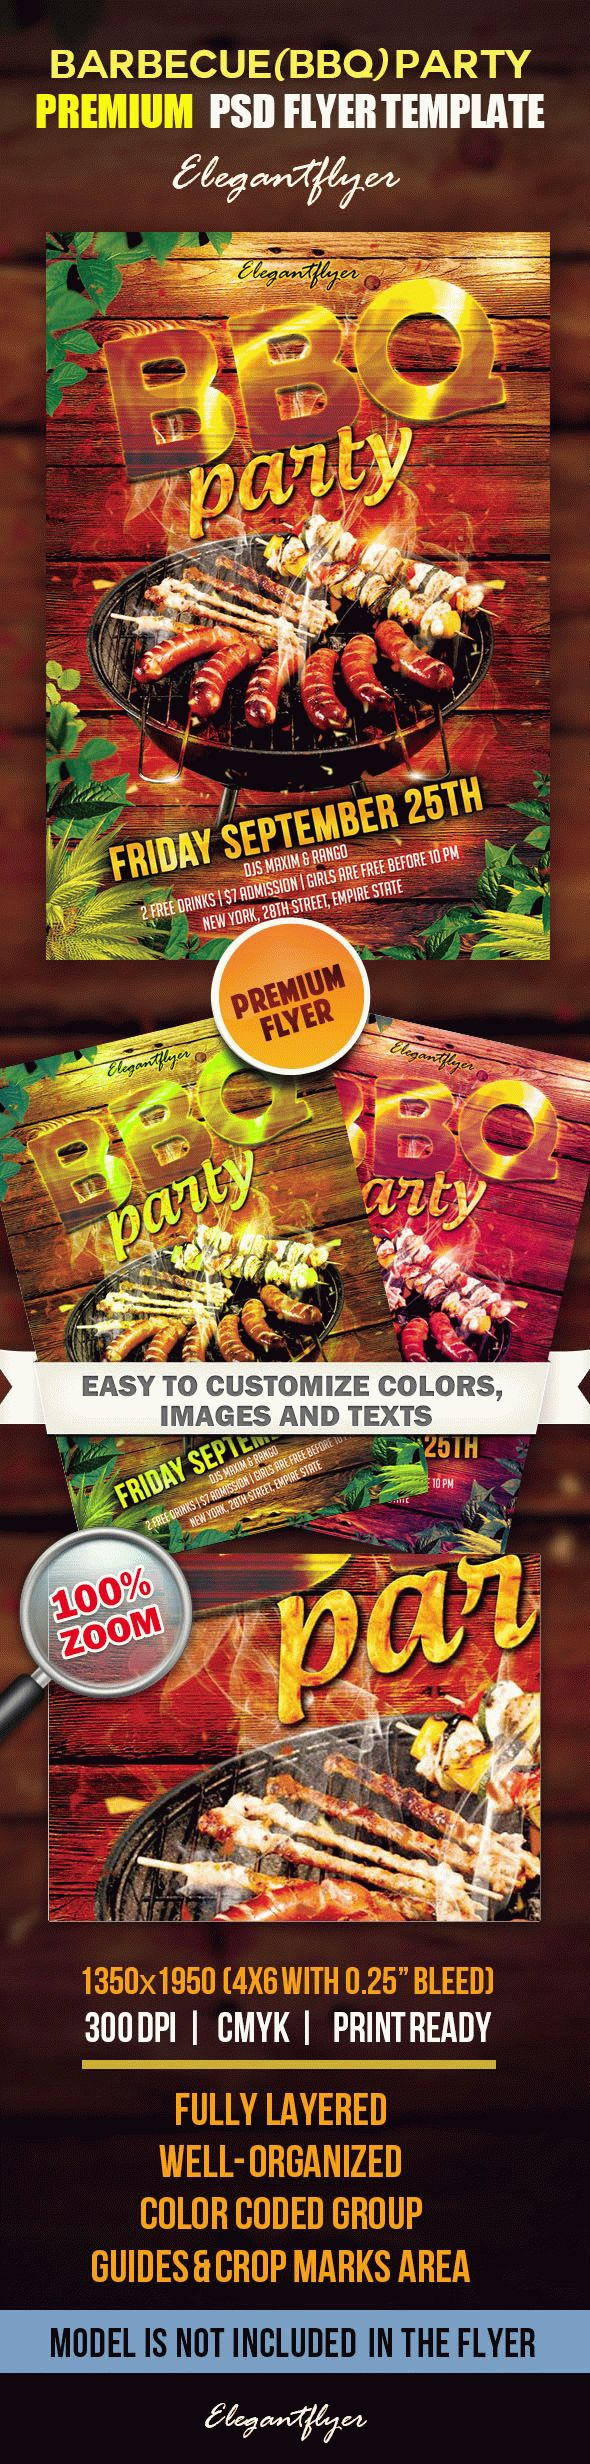 Barbecue (bbq) party – Premium Сlub Flyer PSD Template